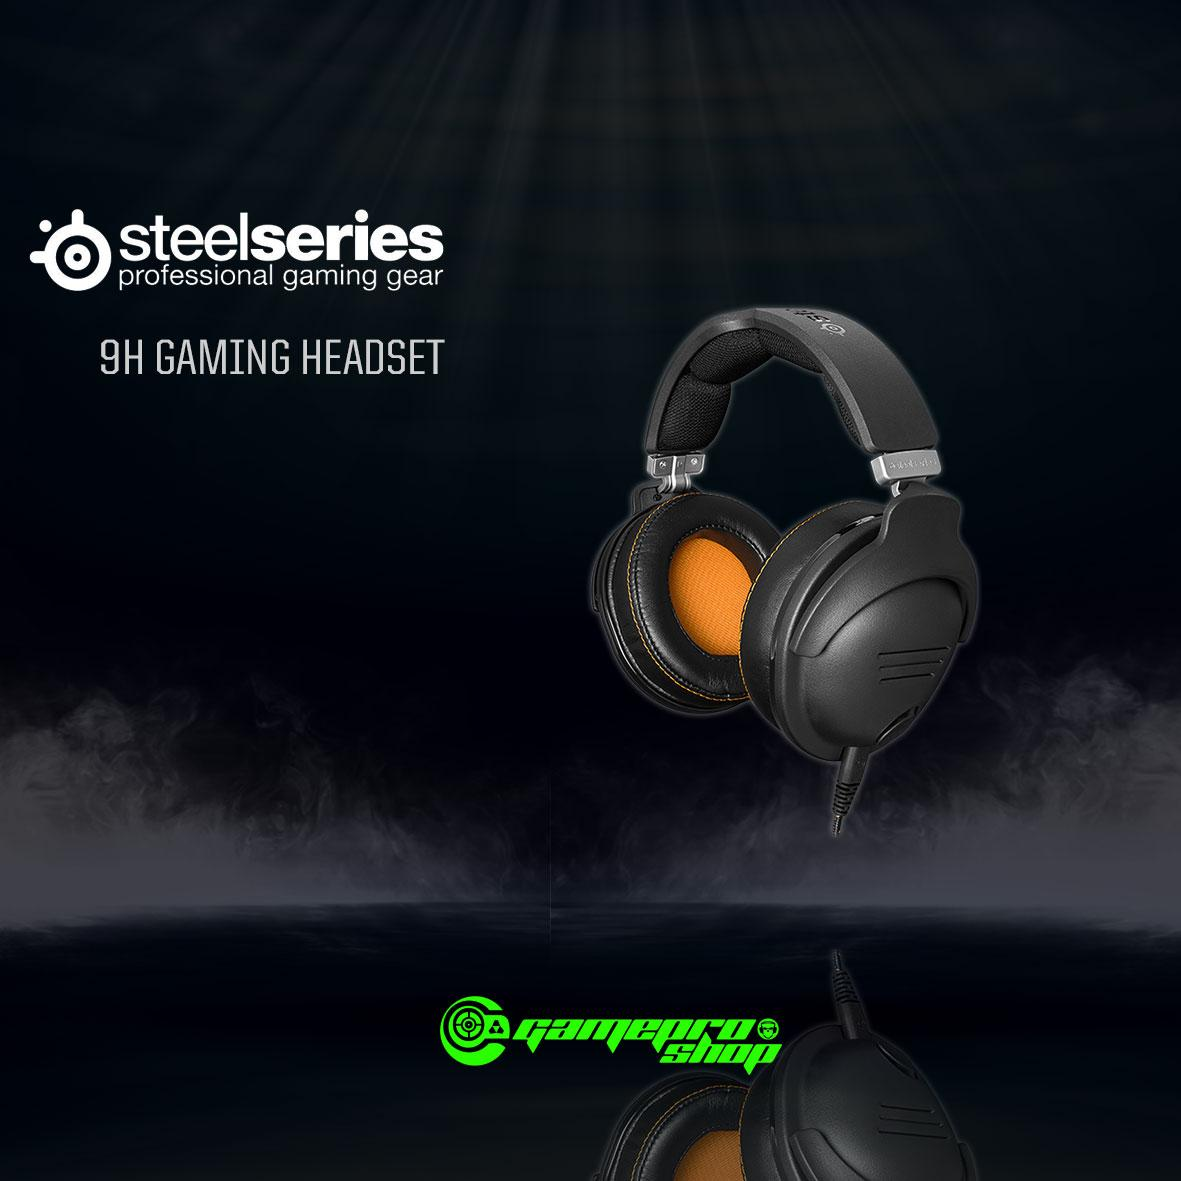 Price Comparisons Steelseries 61101 9H Gaming Headset Gss Promo